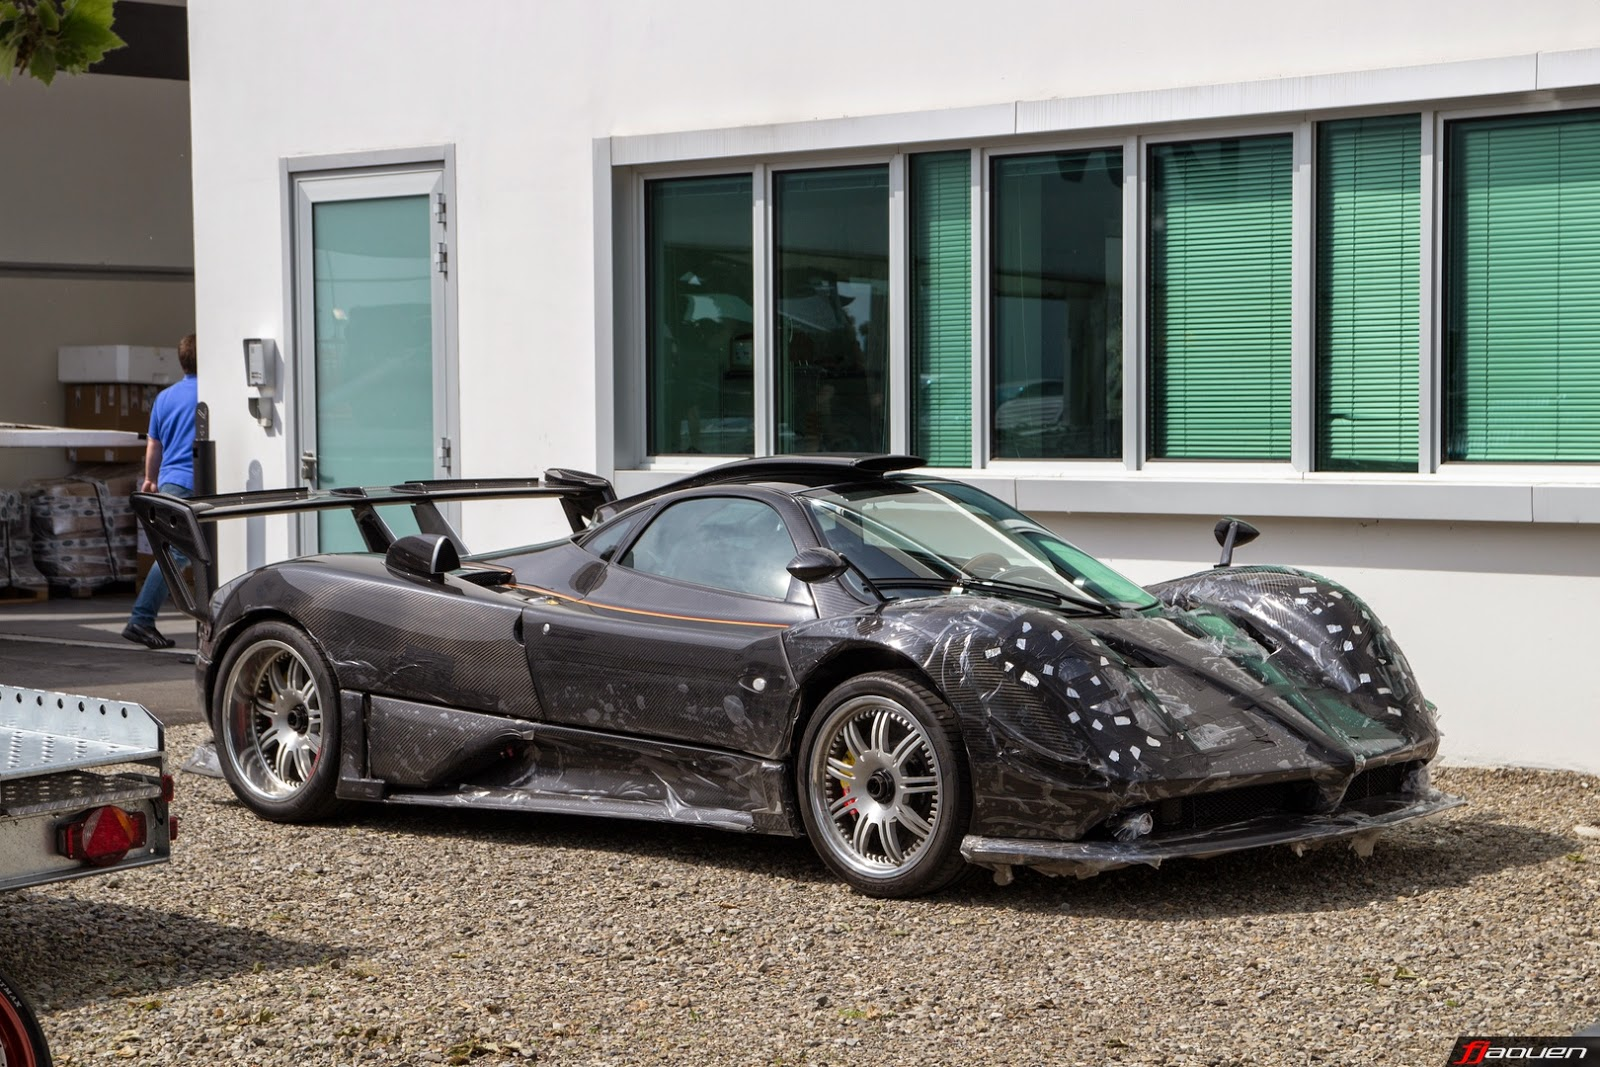 new pagani zonda 760 lm has le mans headlights - autoevolution